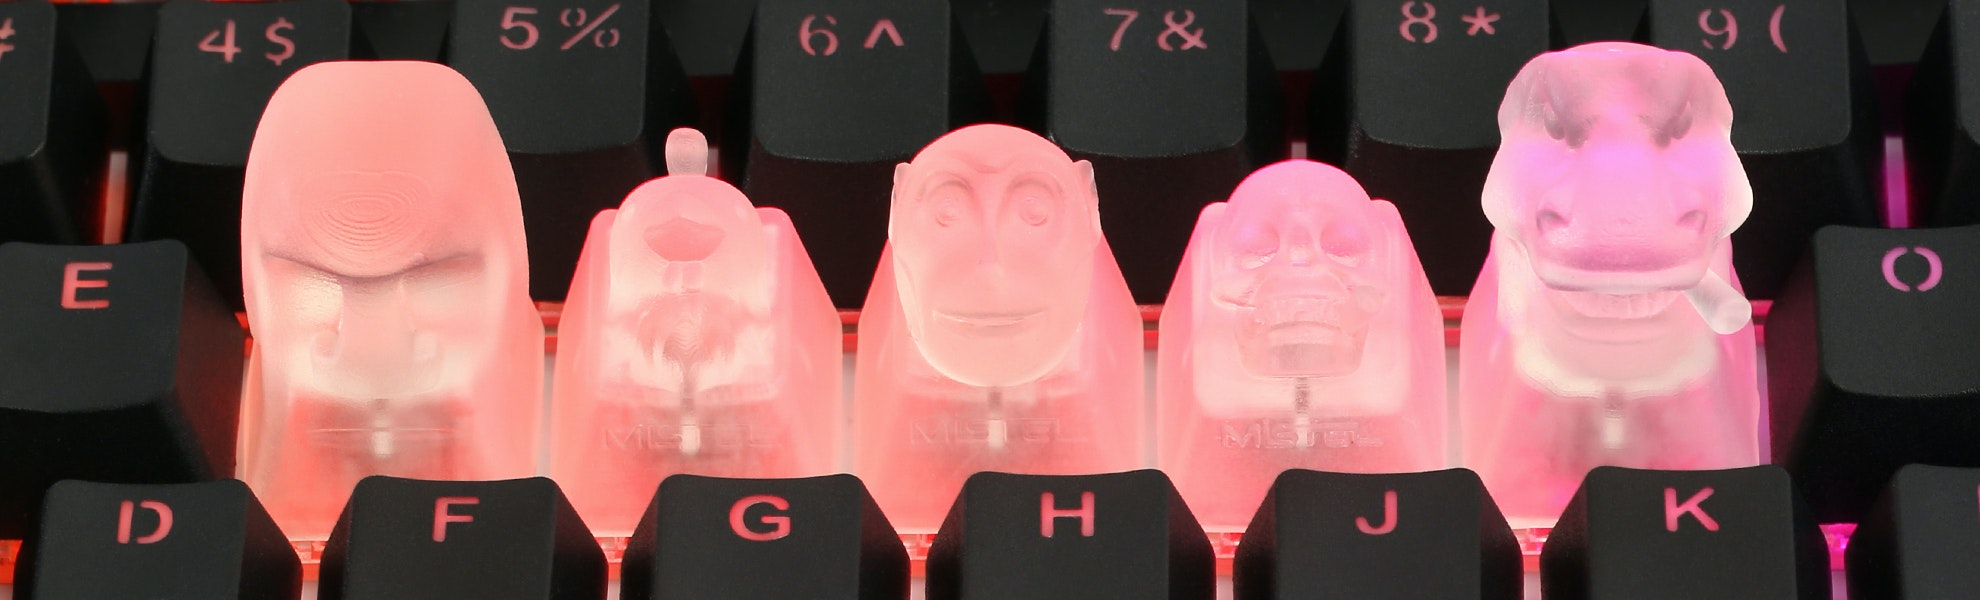 Mistel Transparent Novelty Keycap